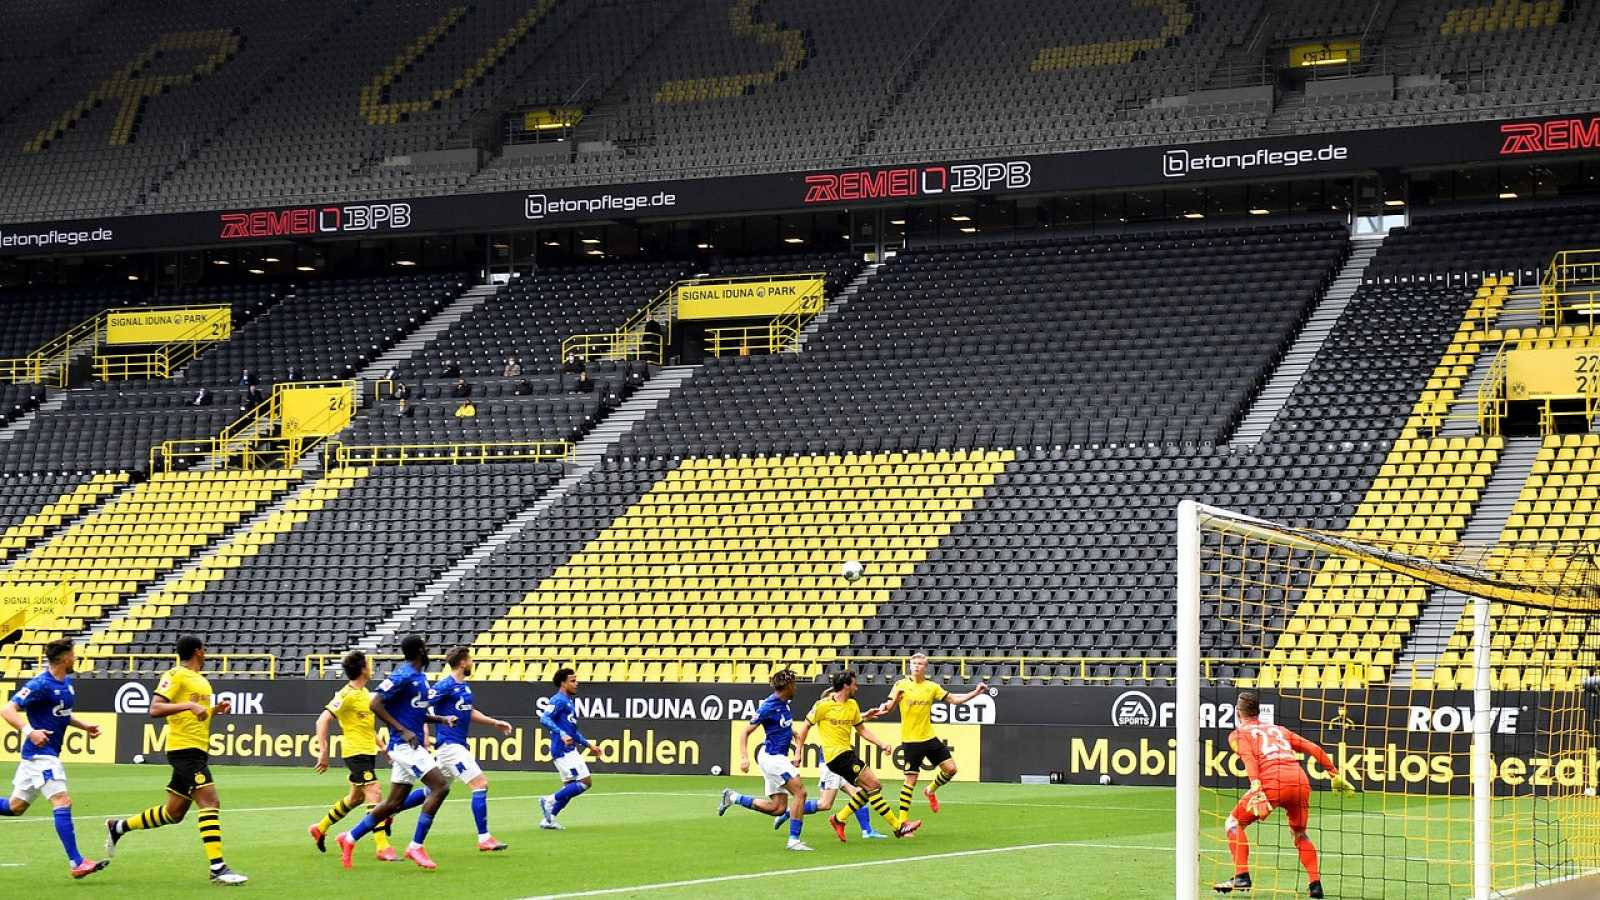 The Bundesliga leads the way to other major leagues